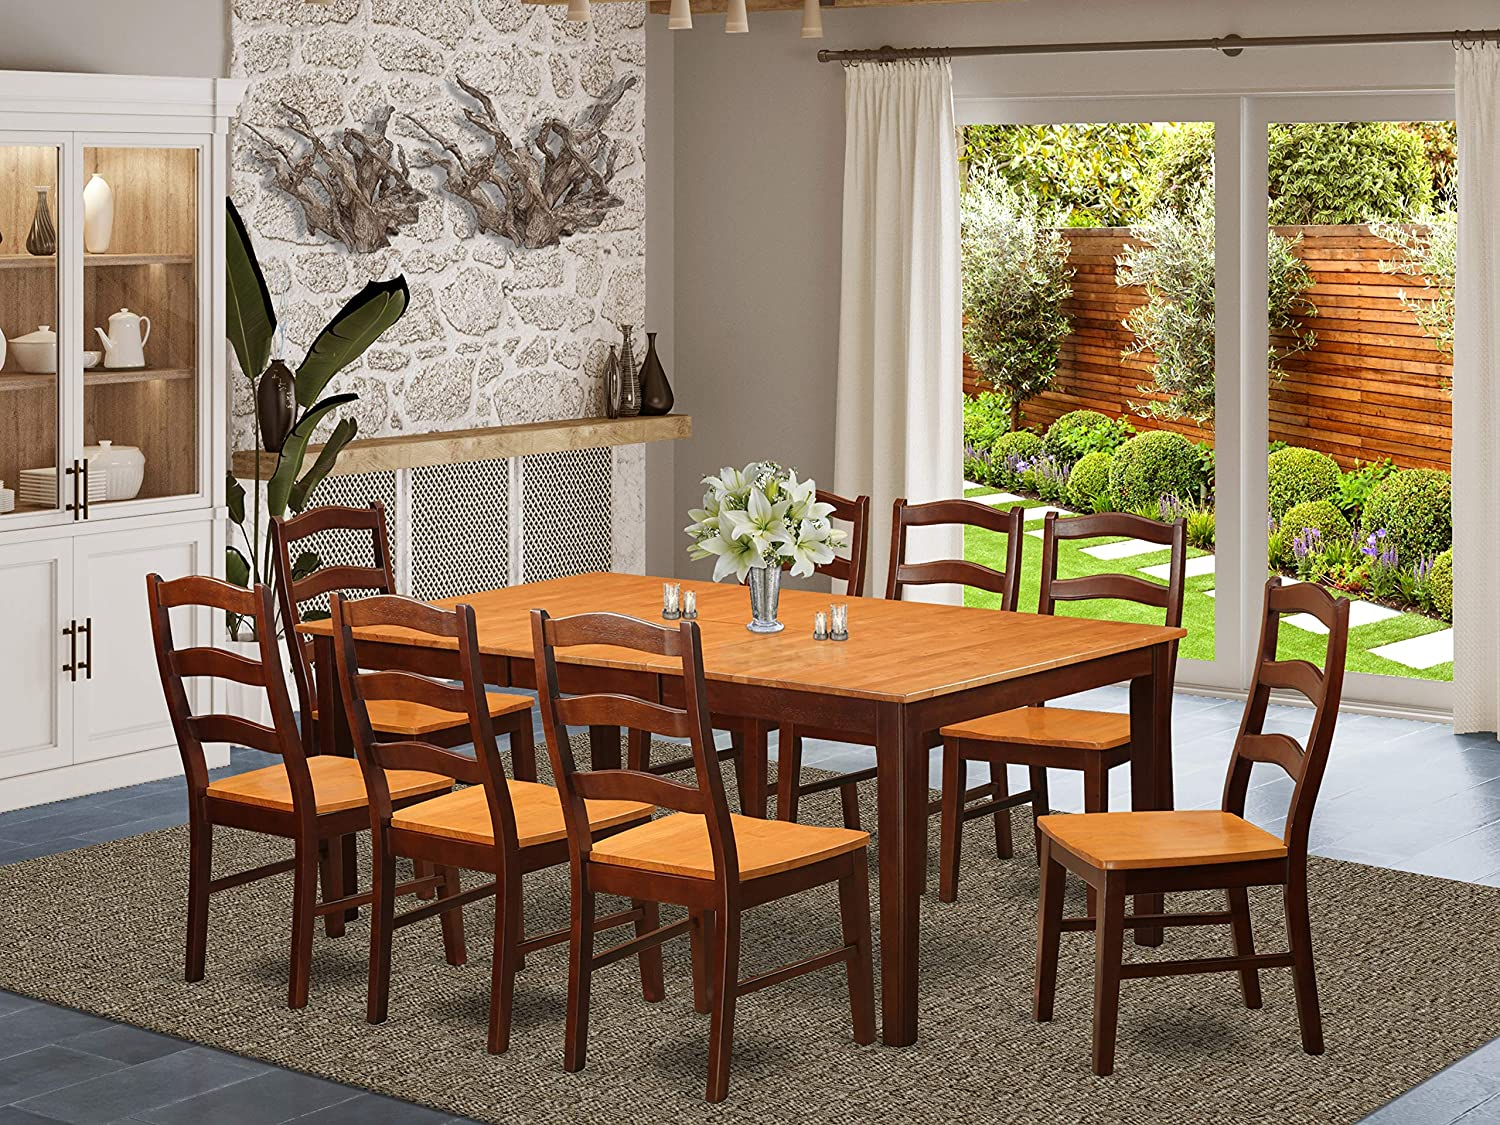 East West Furniture 9-Piece Dining Room Set Included a Self-Storing Butterfly Leaf Rectangular Table and 8 Wooden Kitchen Chairs - Solid Wood Dining Chairs Seat Ladder Back - Brown Finish